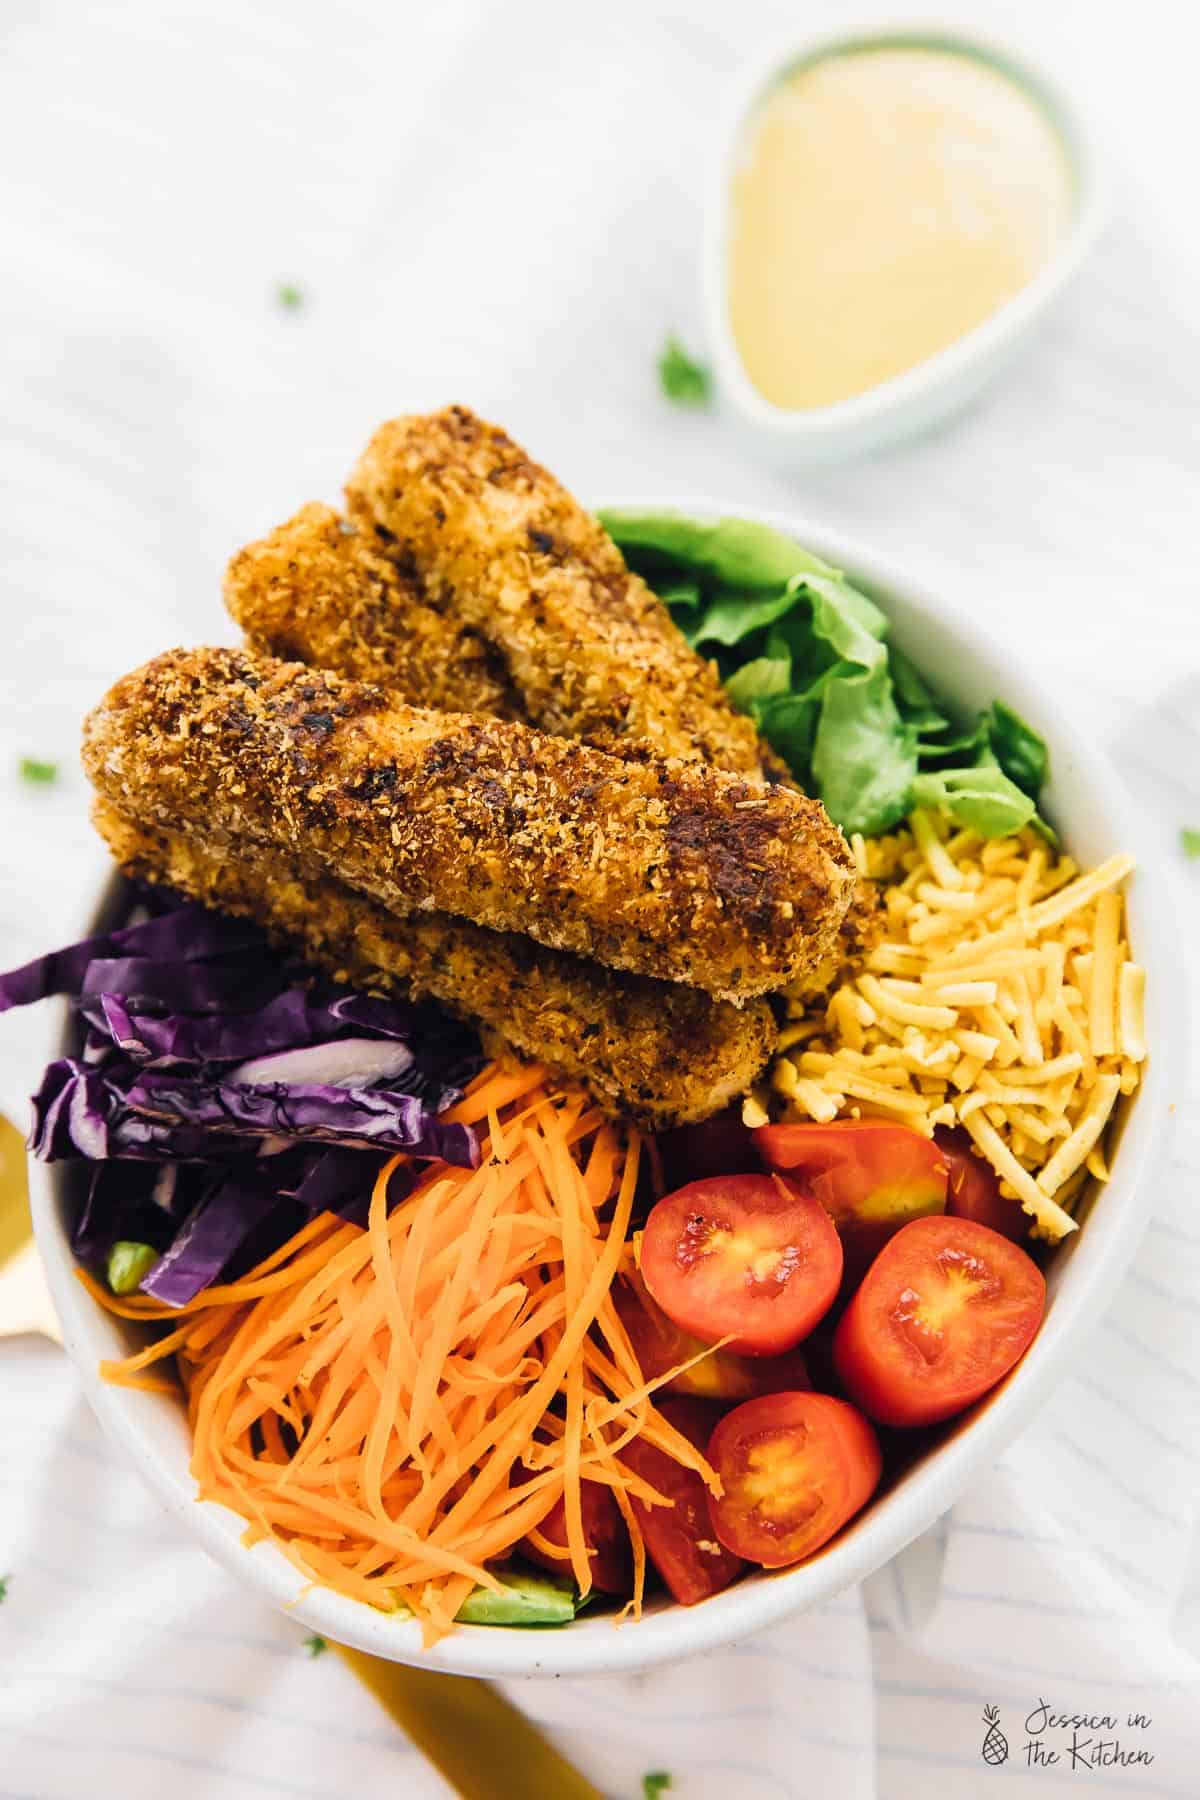 ThisVegan Crispy Cajun Fried Chicken Salad with Honey Mustard Dressing is the ultimate healthy indulgent salad! It's topped with a vegan version of Honey Mustard Dressing and SO crave-worthy! via https://jessicainthekitchen.com